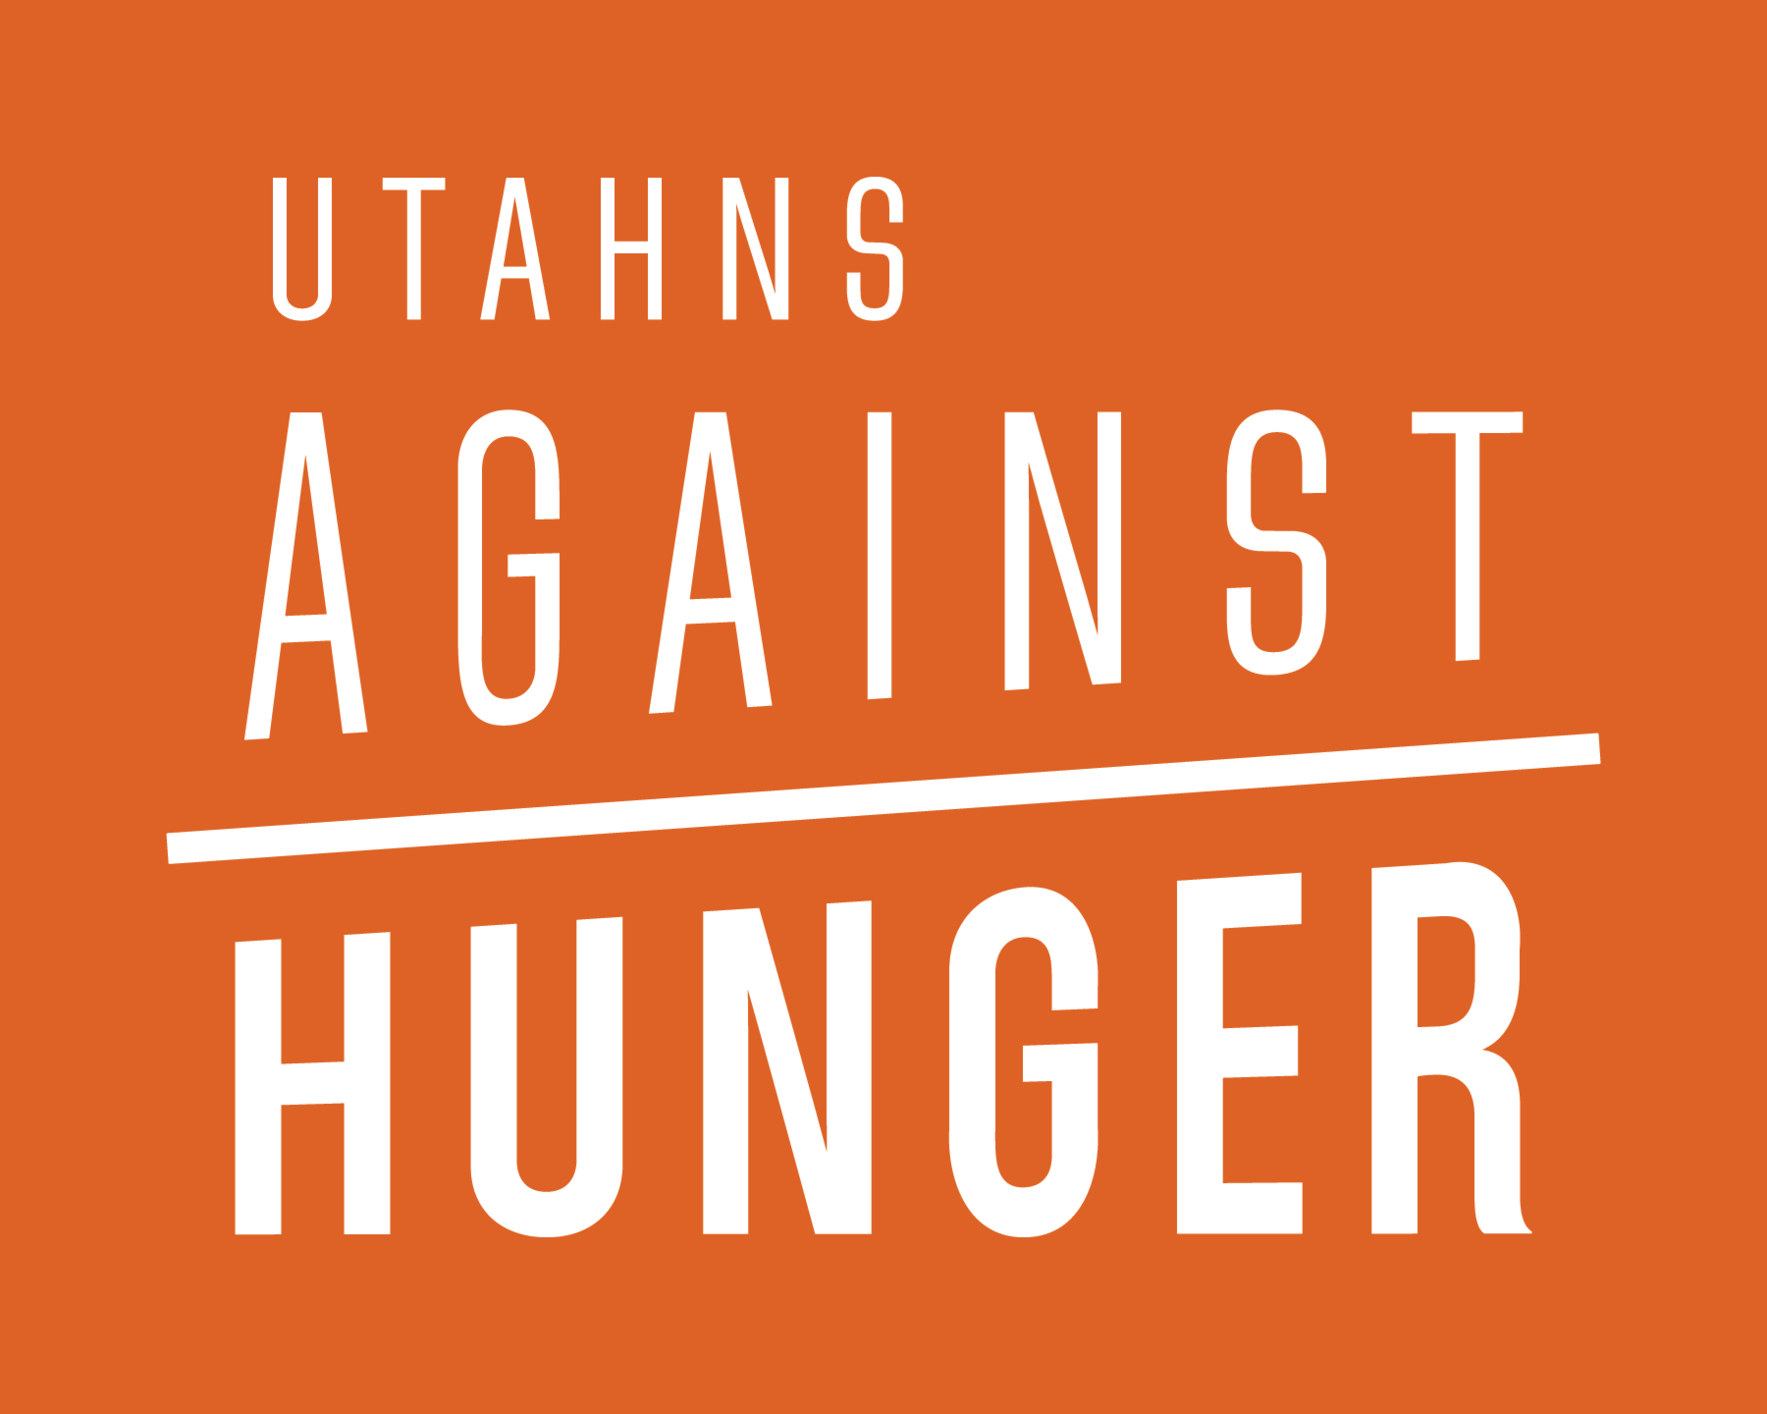 Help Utahns Against Hunger increase access to food through advocacy, outreach and education image